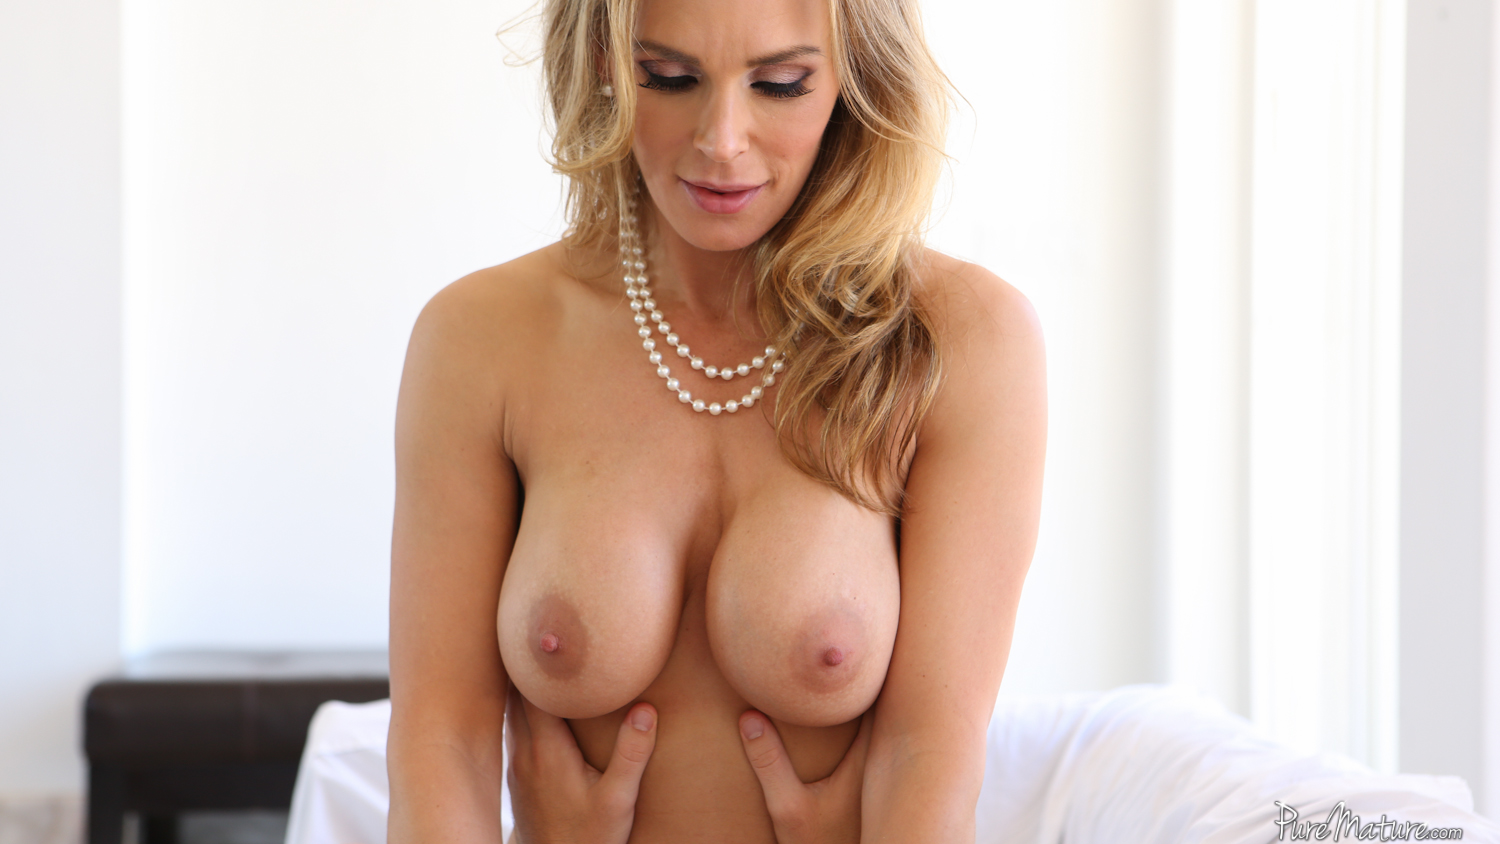 Tanya tate hot opinion